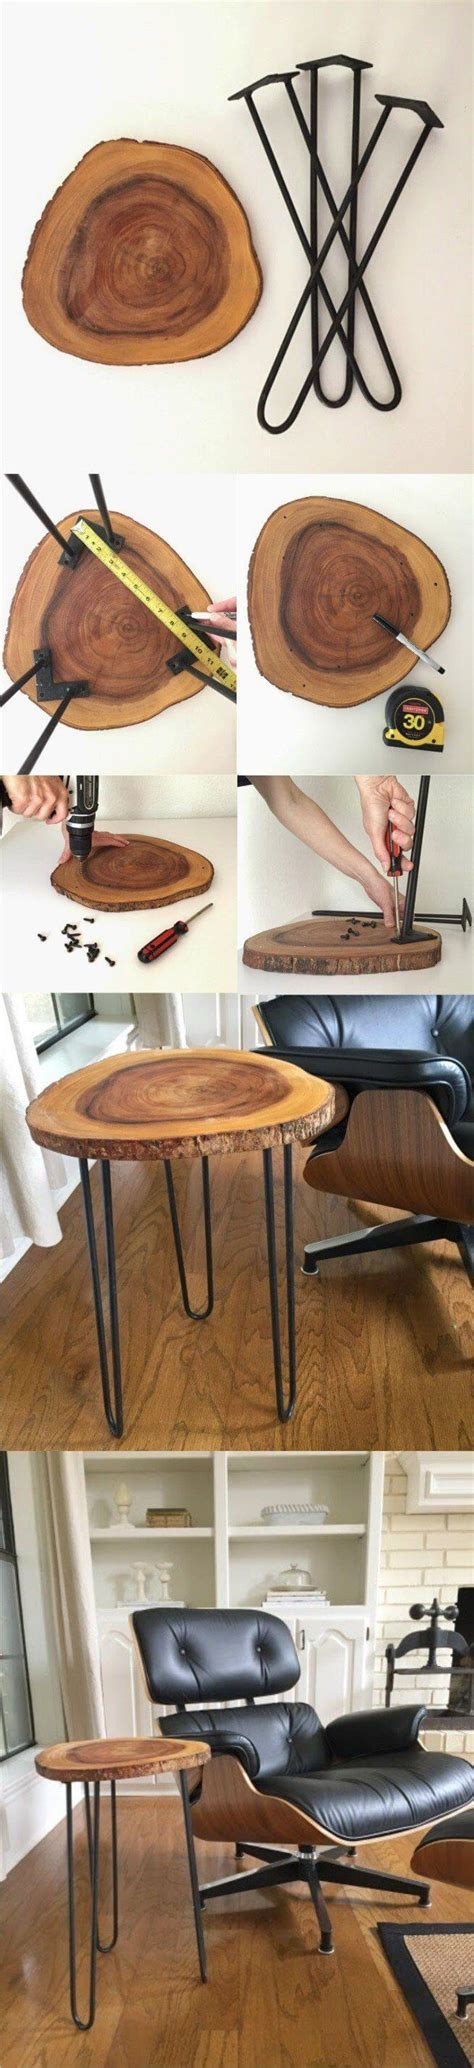 diy wood craft projects ideas  designs